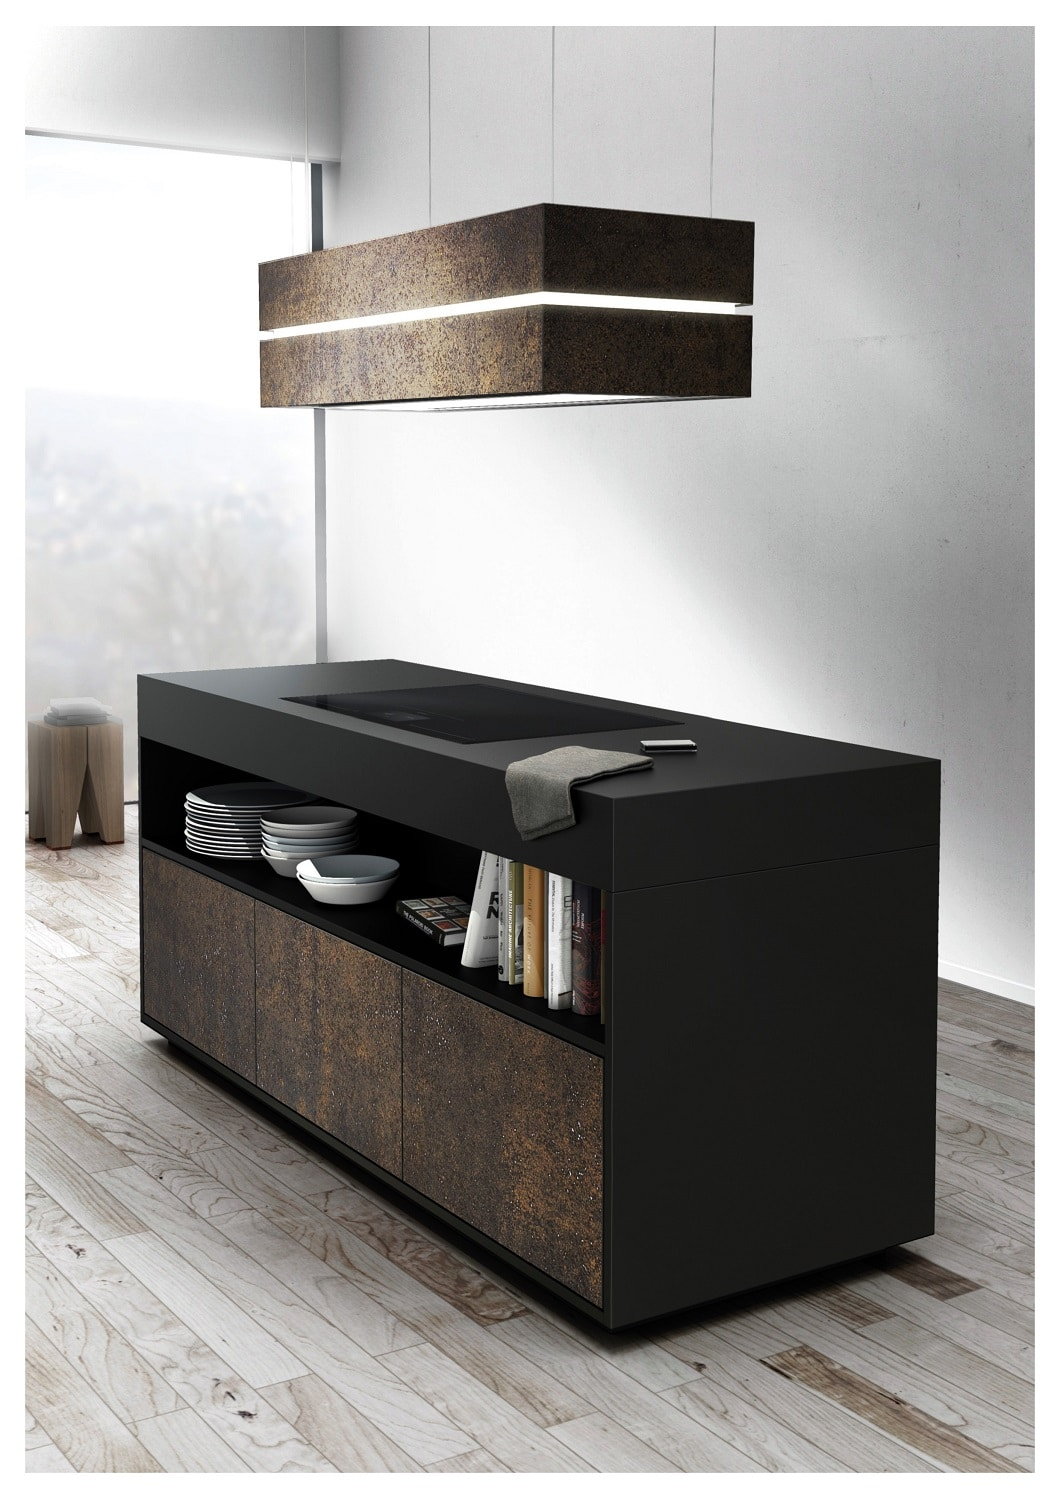 berbel dunstabzug kerryskritters. Black Bedroom Furniture Sets. Home Design Ideas